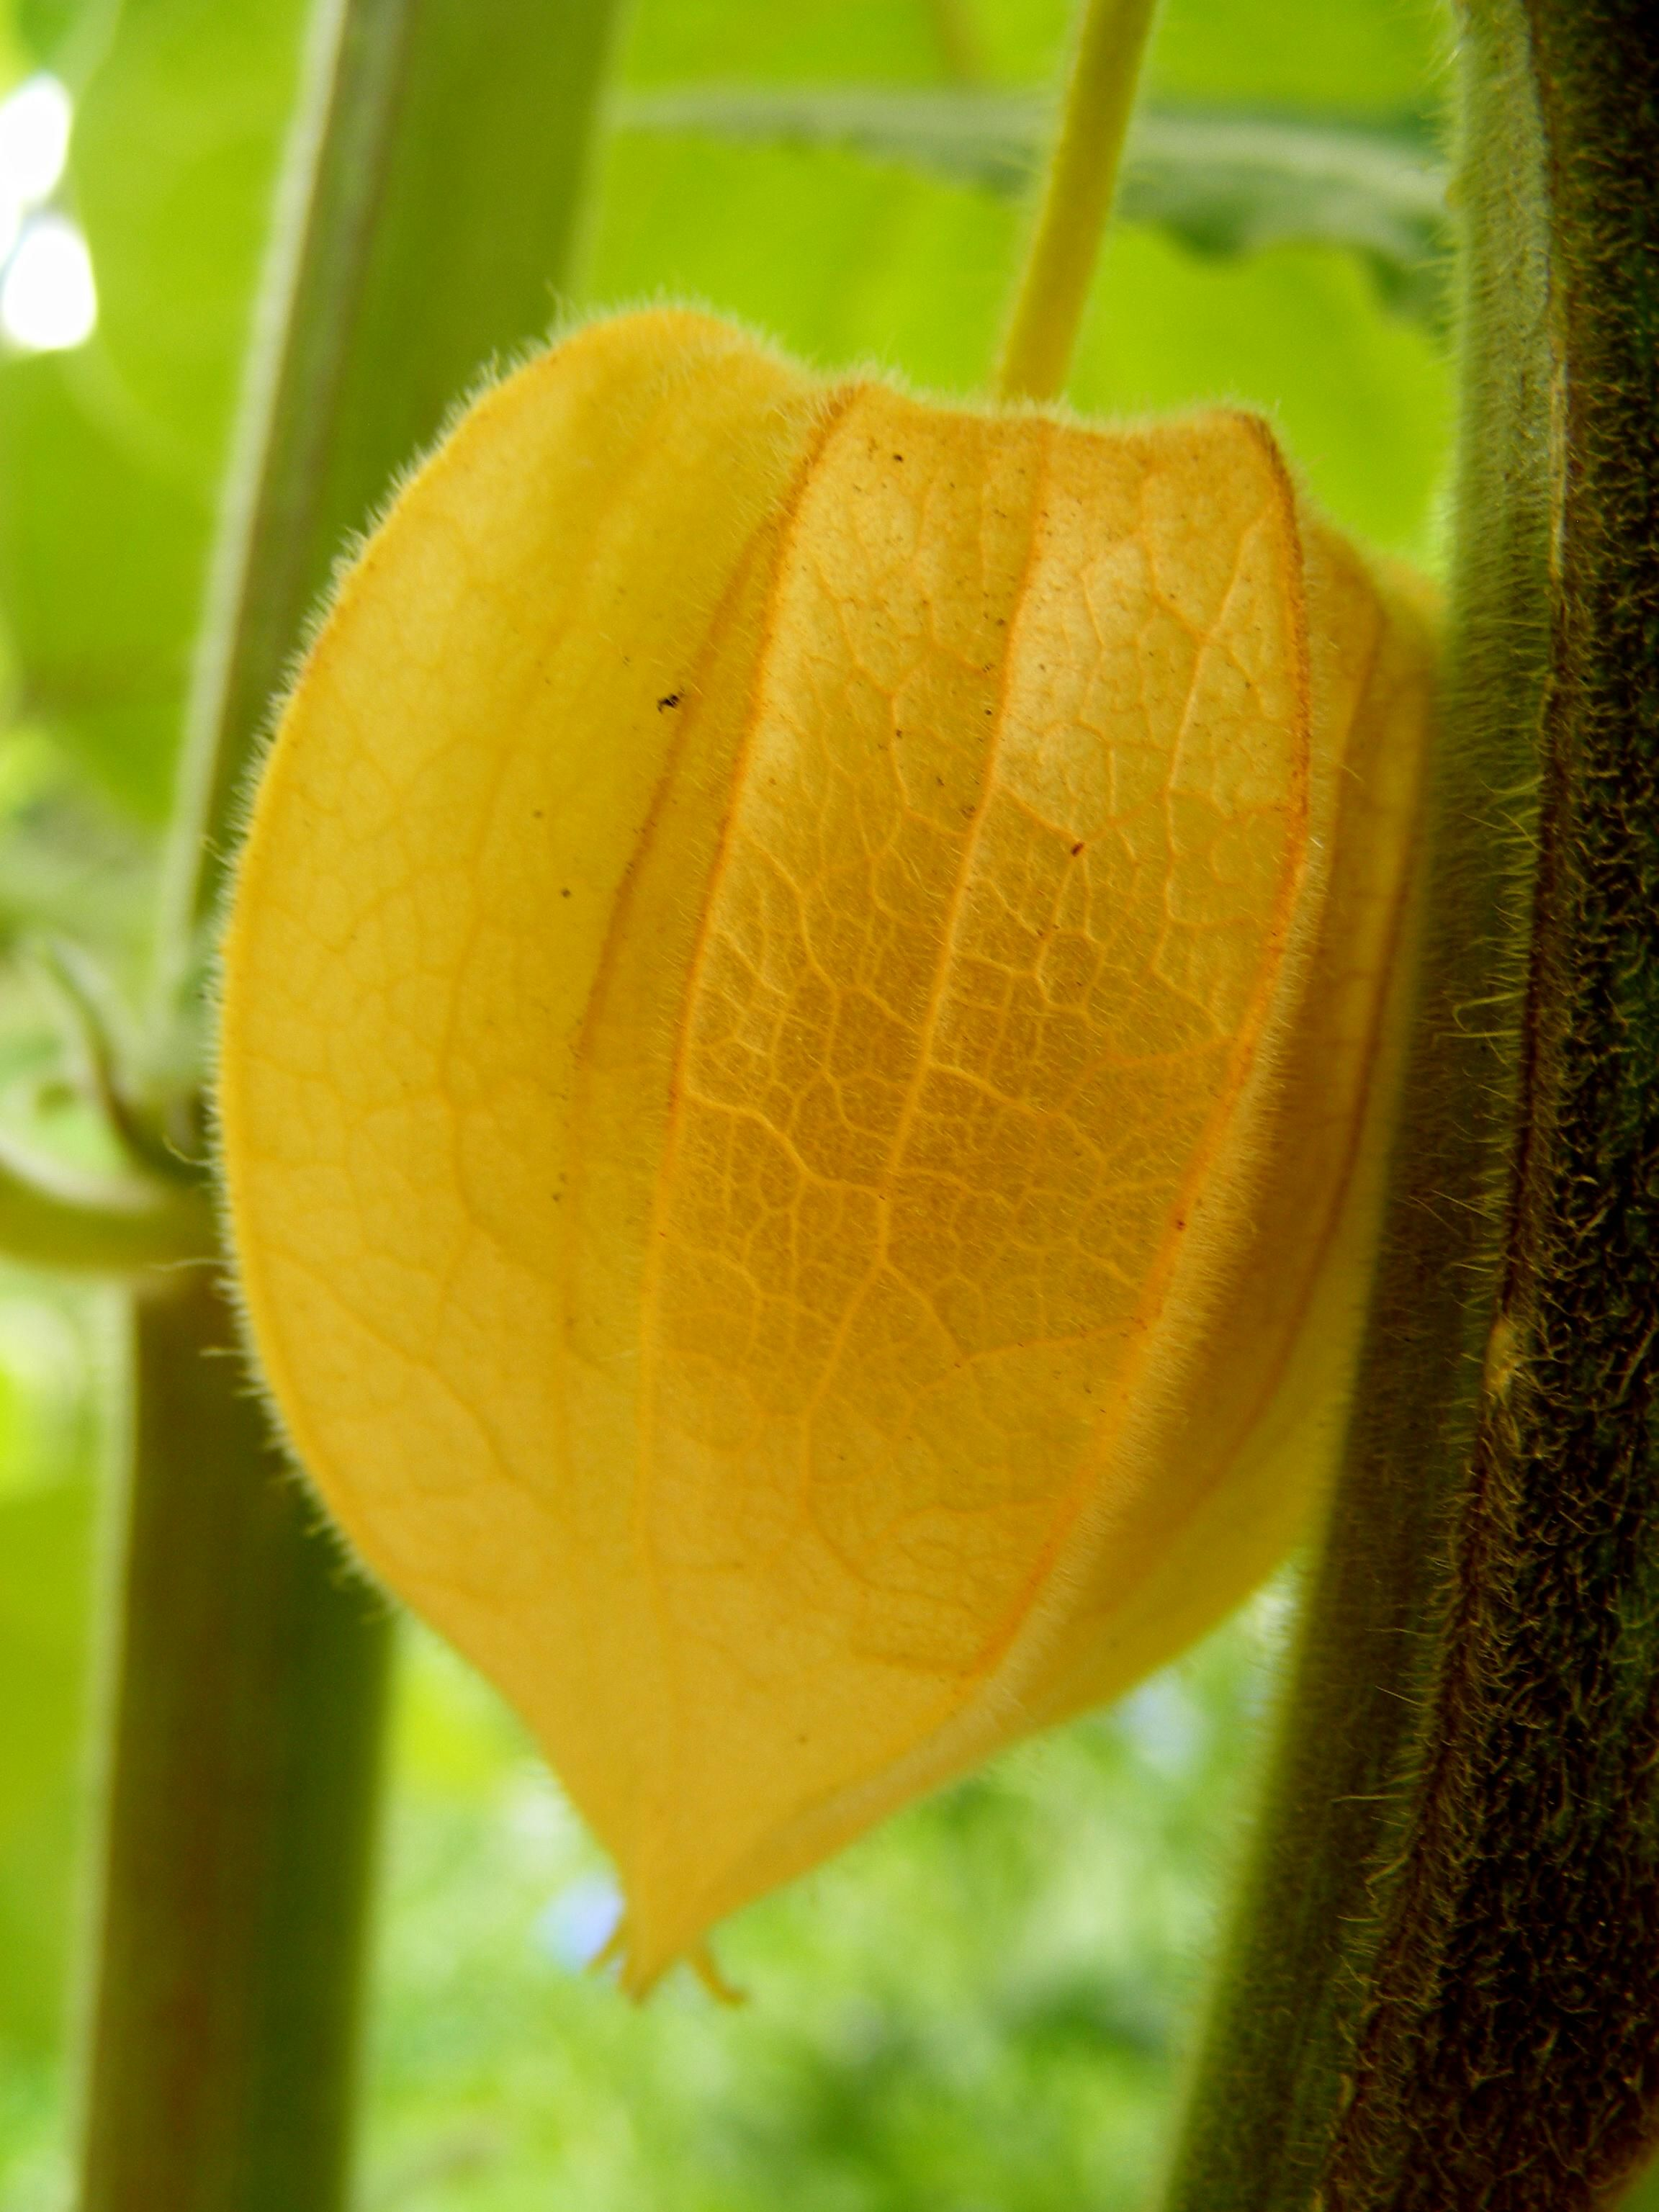 physalis pod beginning to ripen cape gooseberries are their other